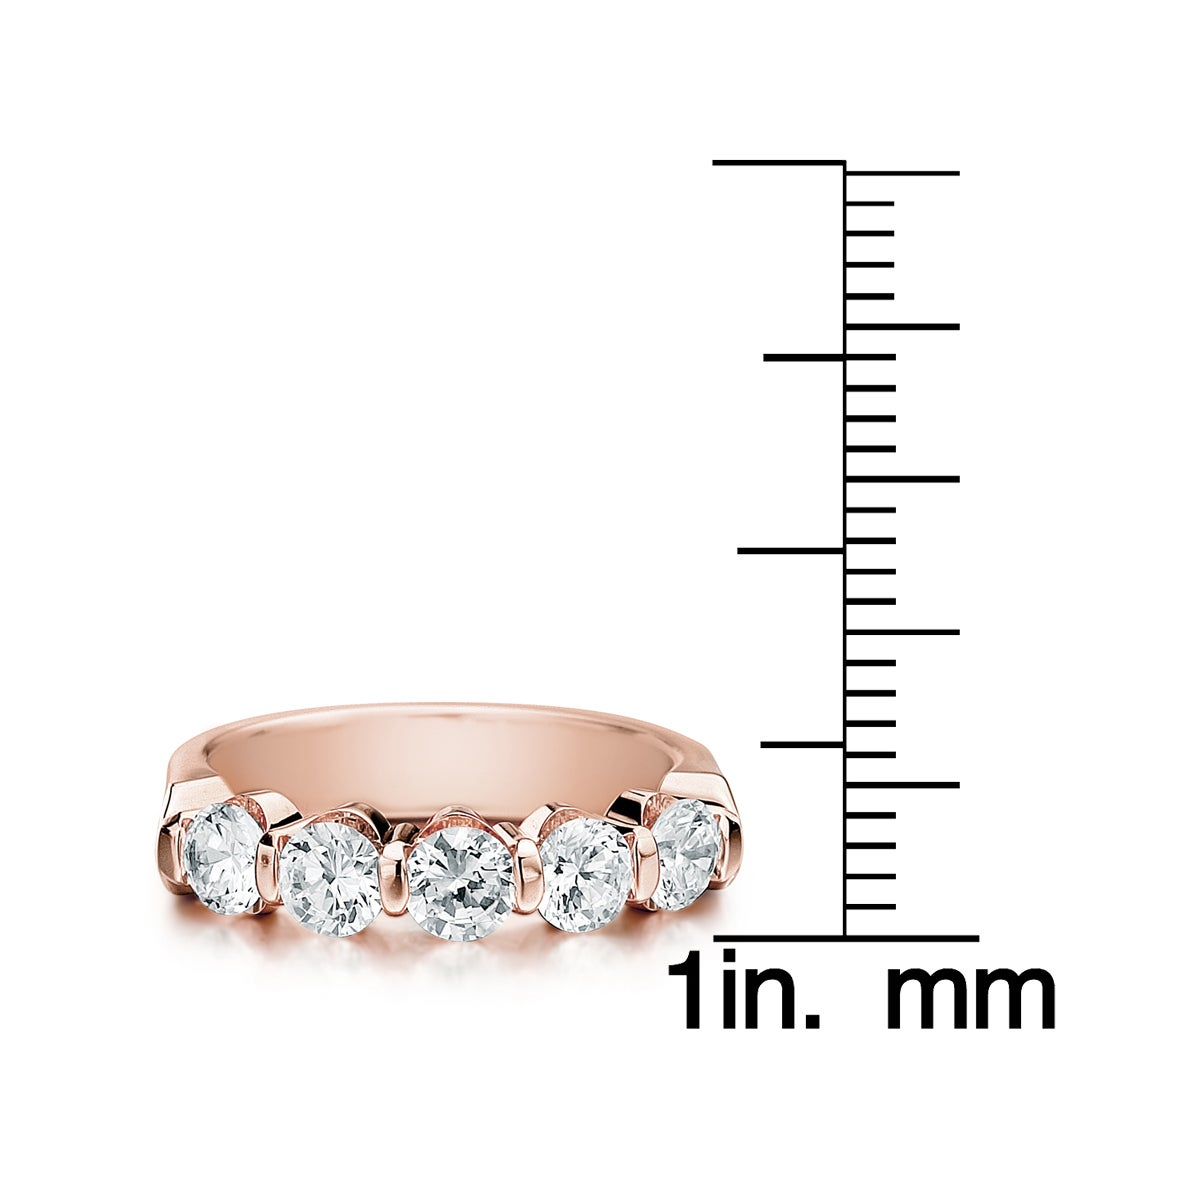 diamond to en tw ct wedding gold zm zoom hover mv band kay kaystore cut anniversary round rose bands